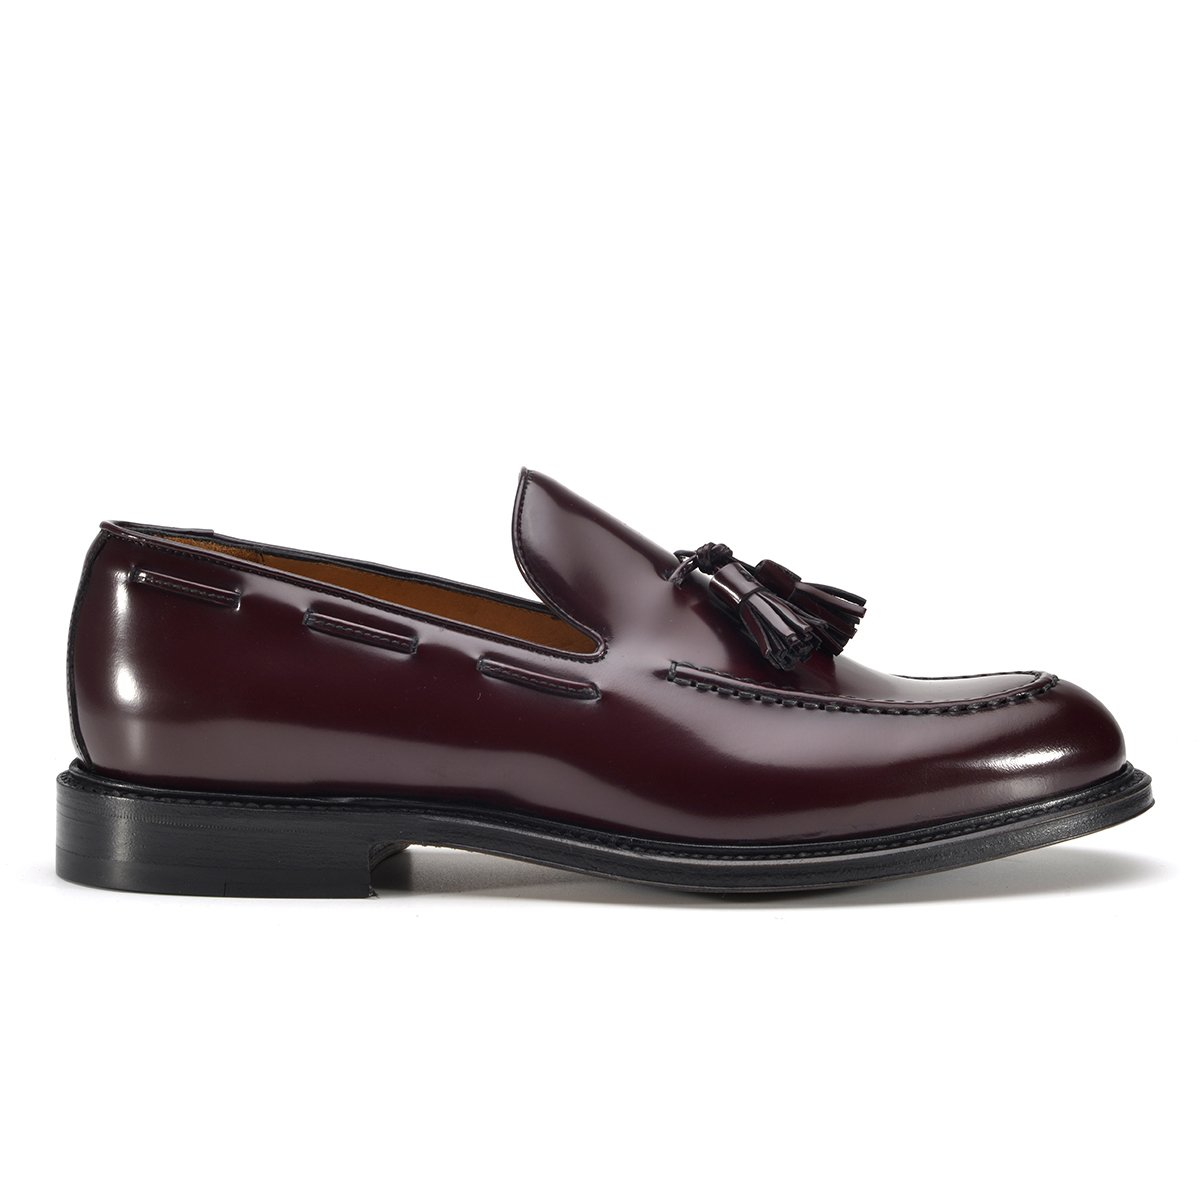 mocassini goodyear di lusso bordeaux